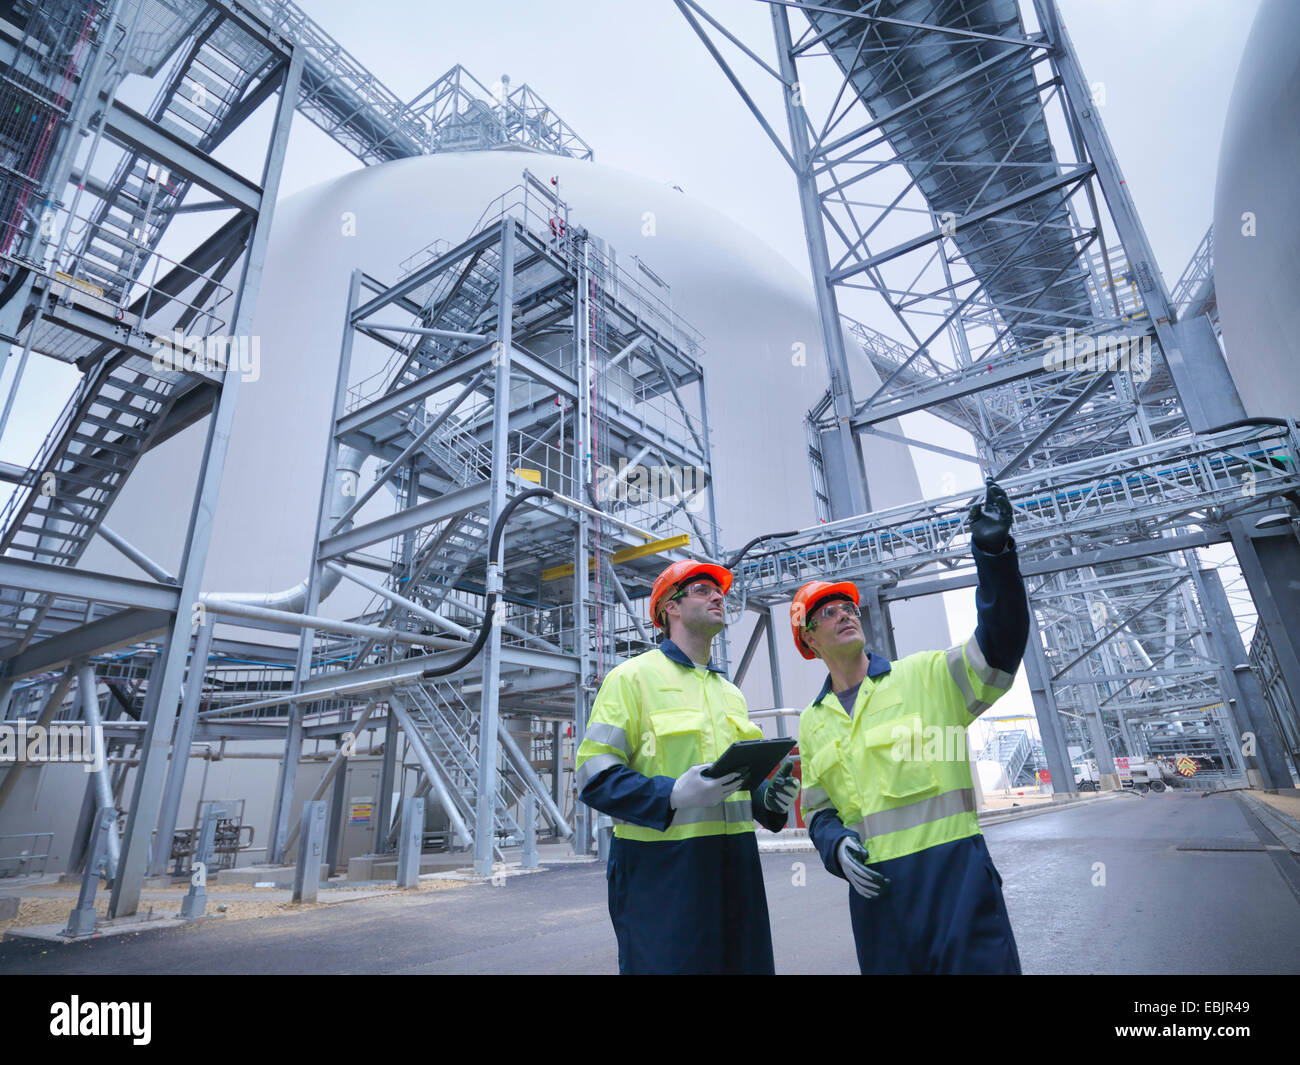 Workers in discussion in biomass facility, low angle view - Stock Image